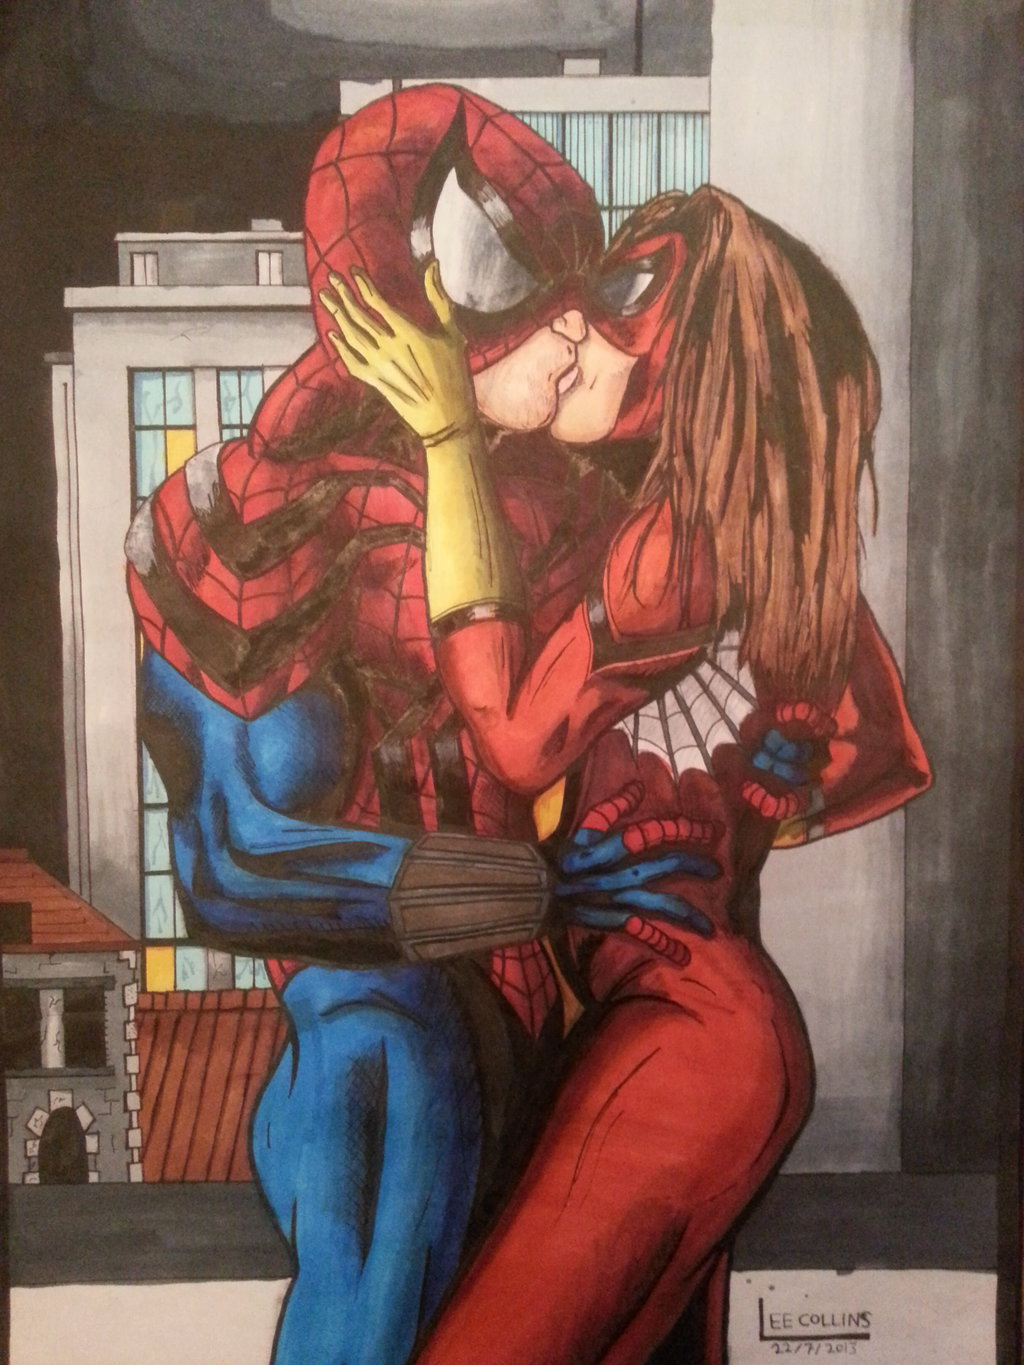 Drawn spiderman spiderwoman Skoolnik spider kissing on colour